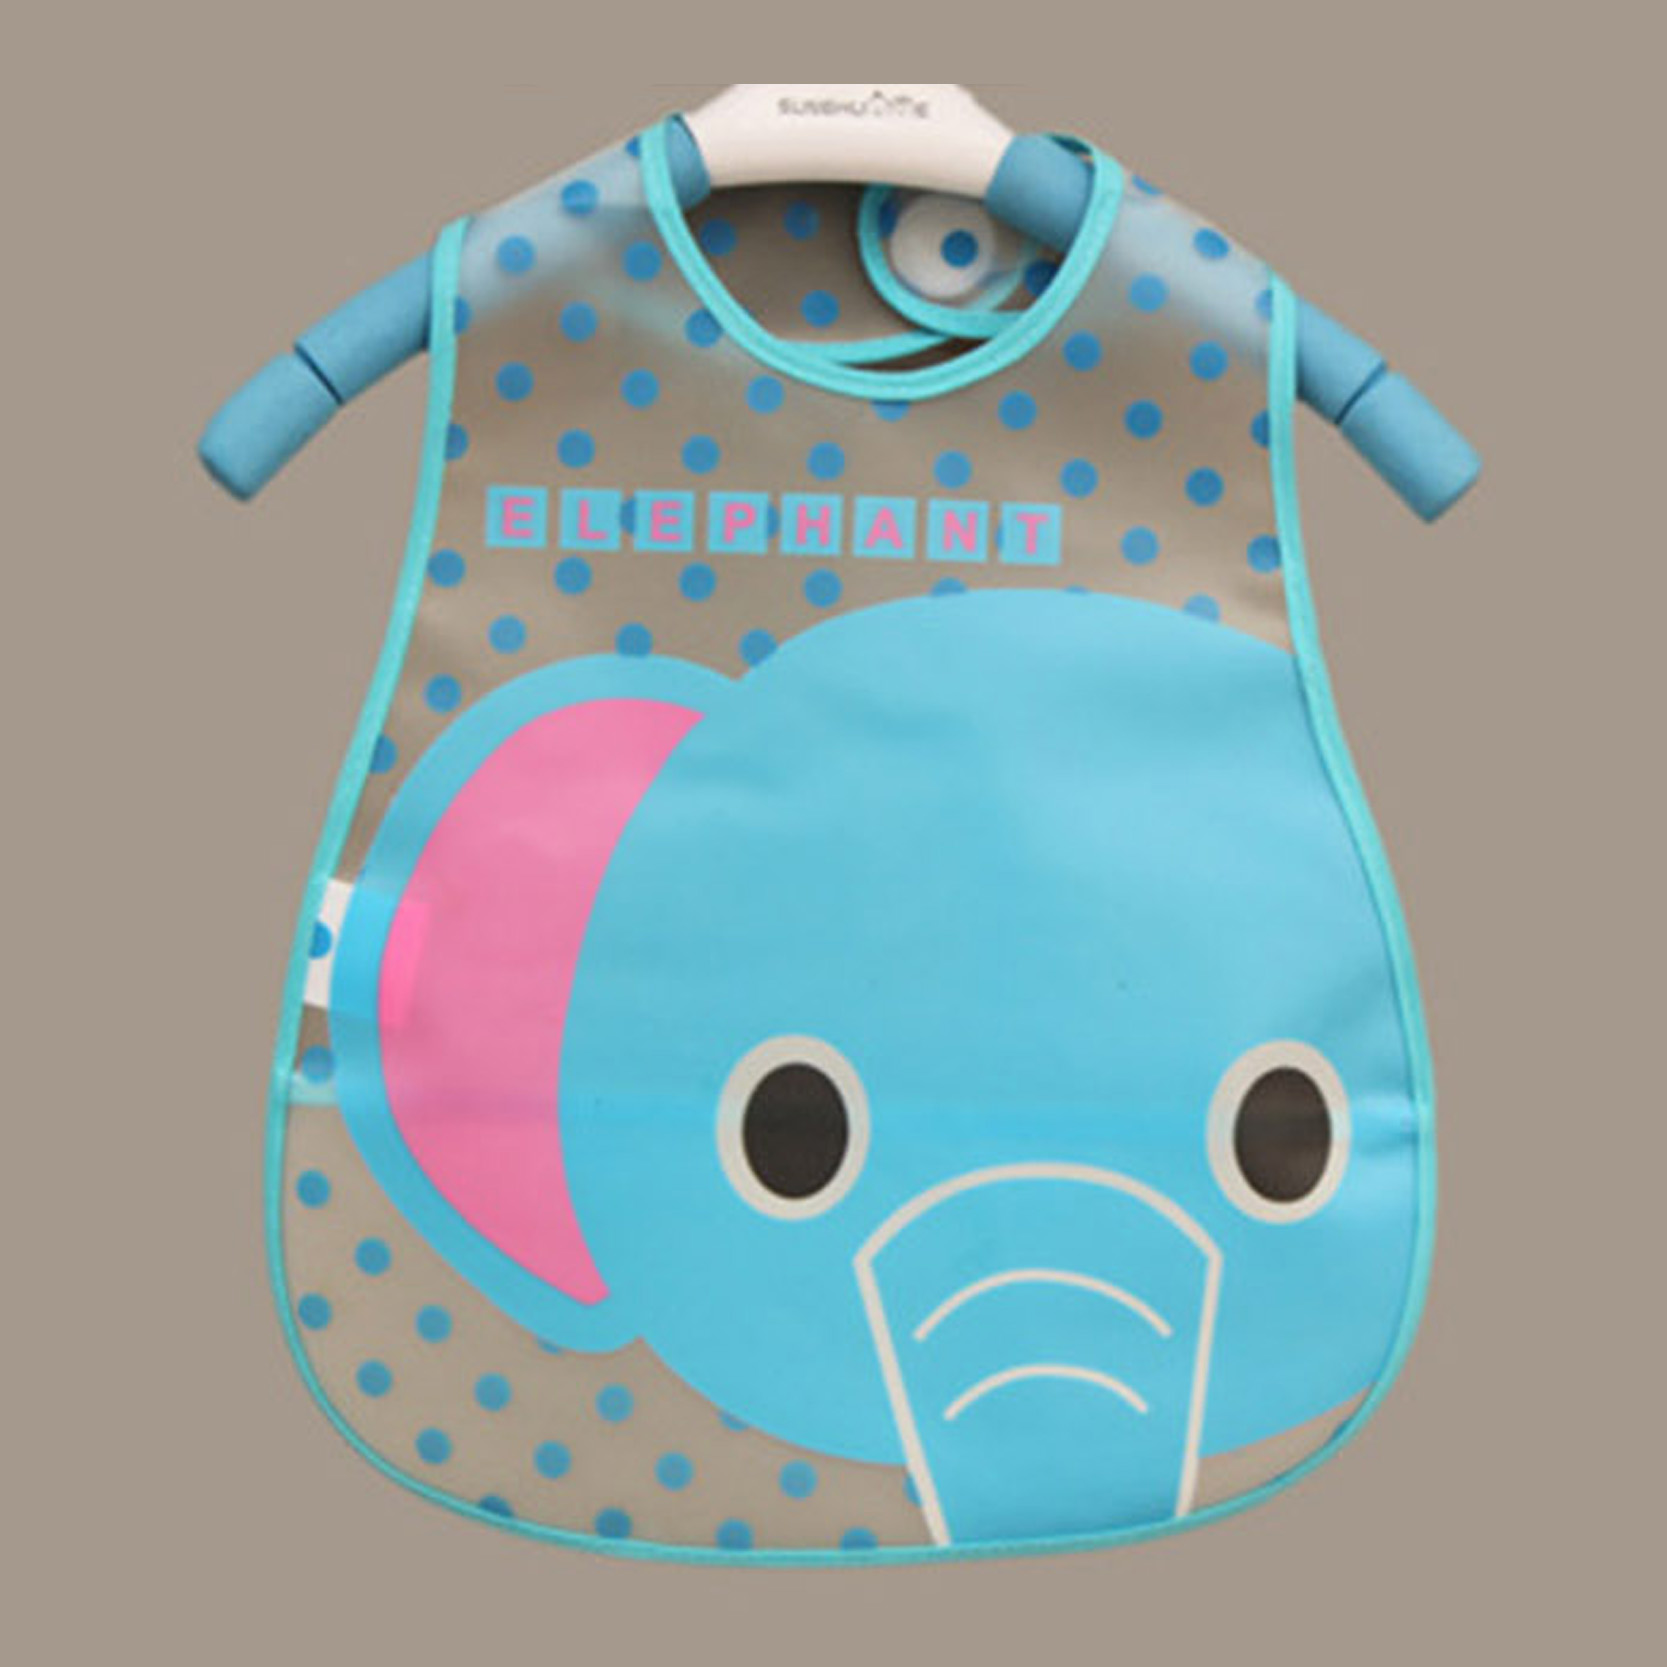 Baby Bibs Waterproof Elephant Cartoon Children Bibs Infant Burp Cloths 2015 Brand Clothing Towel Kids Clothing Accessories(China (Mainland))